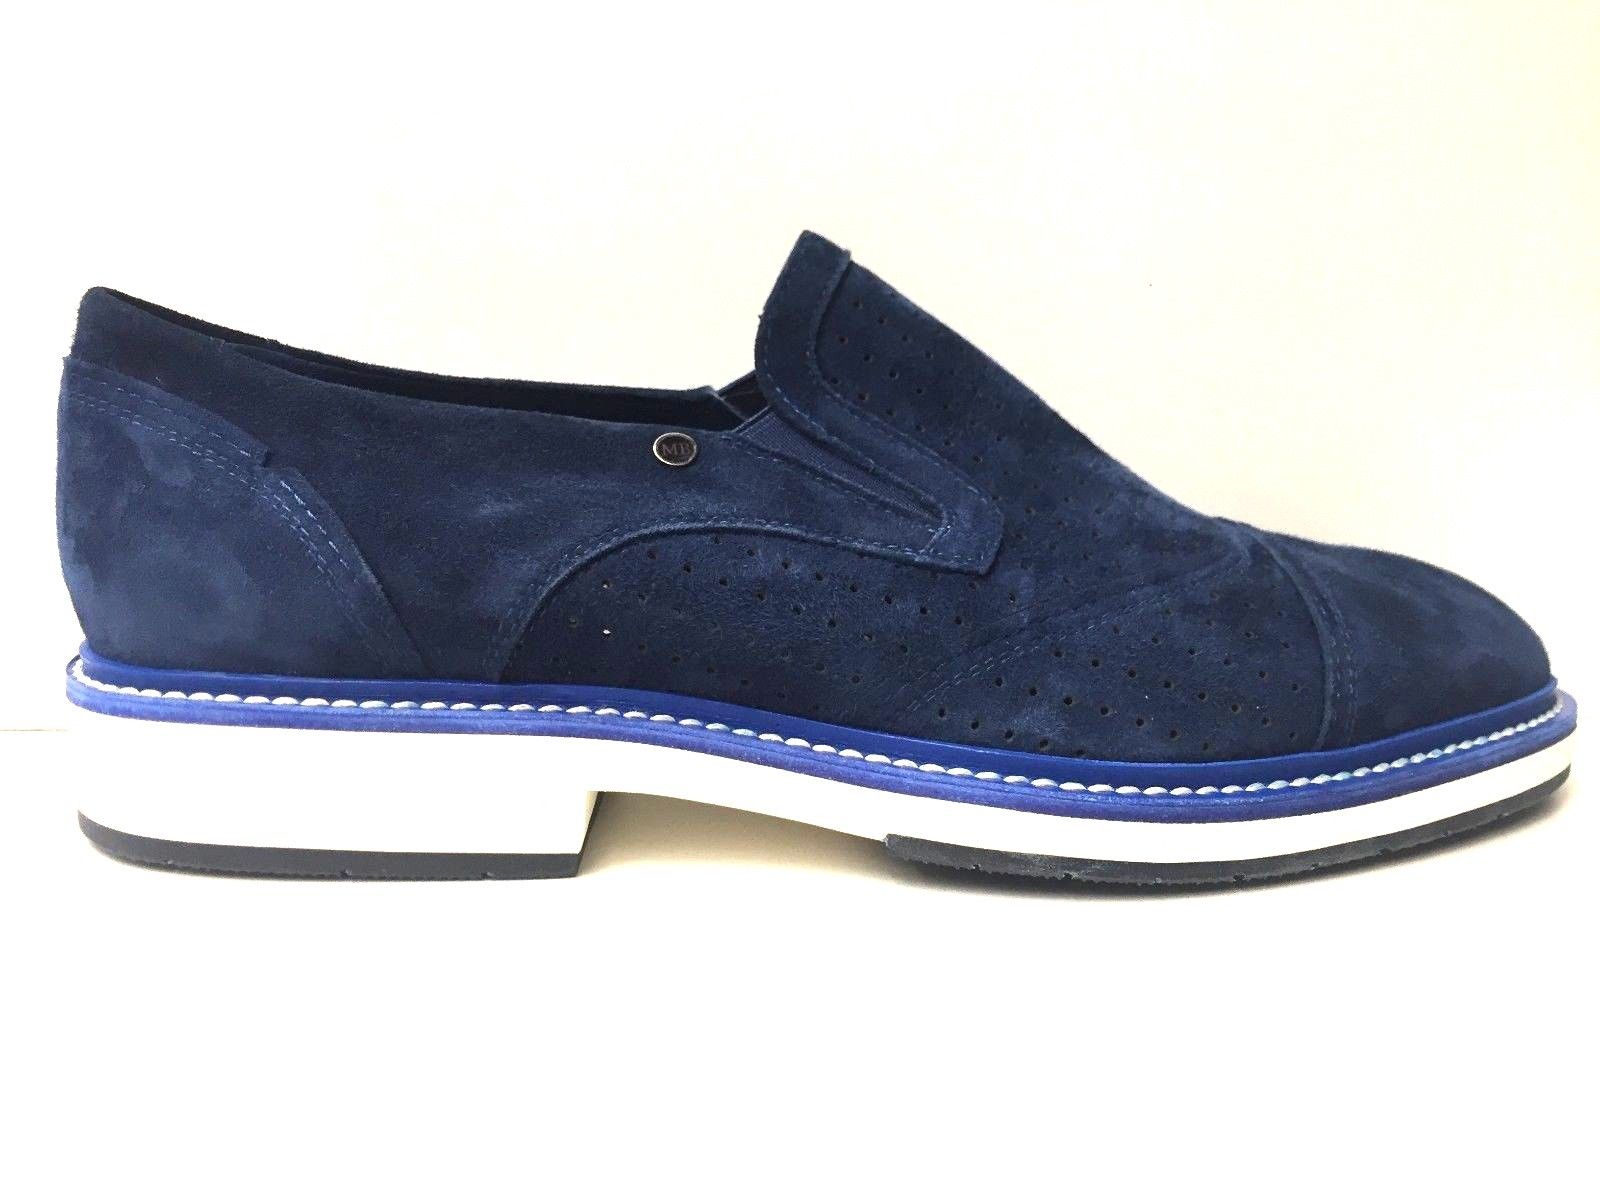 SCARPE MOCASSINI CASUAL UOMO MARIO BRUNI ORIGINALE 58588 PELLE PE SHOES NUOVO